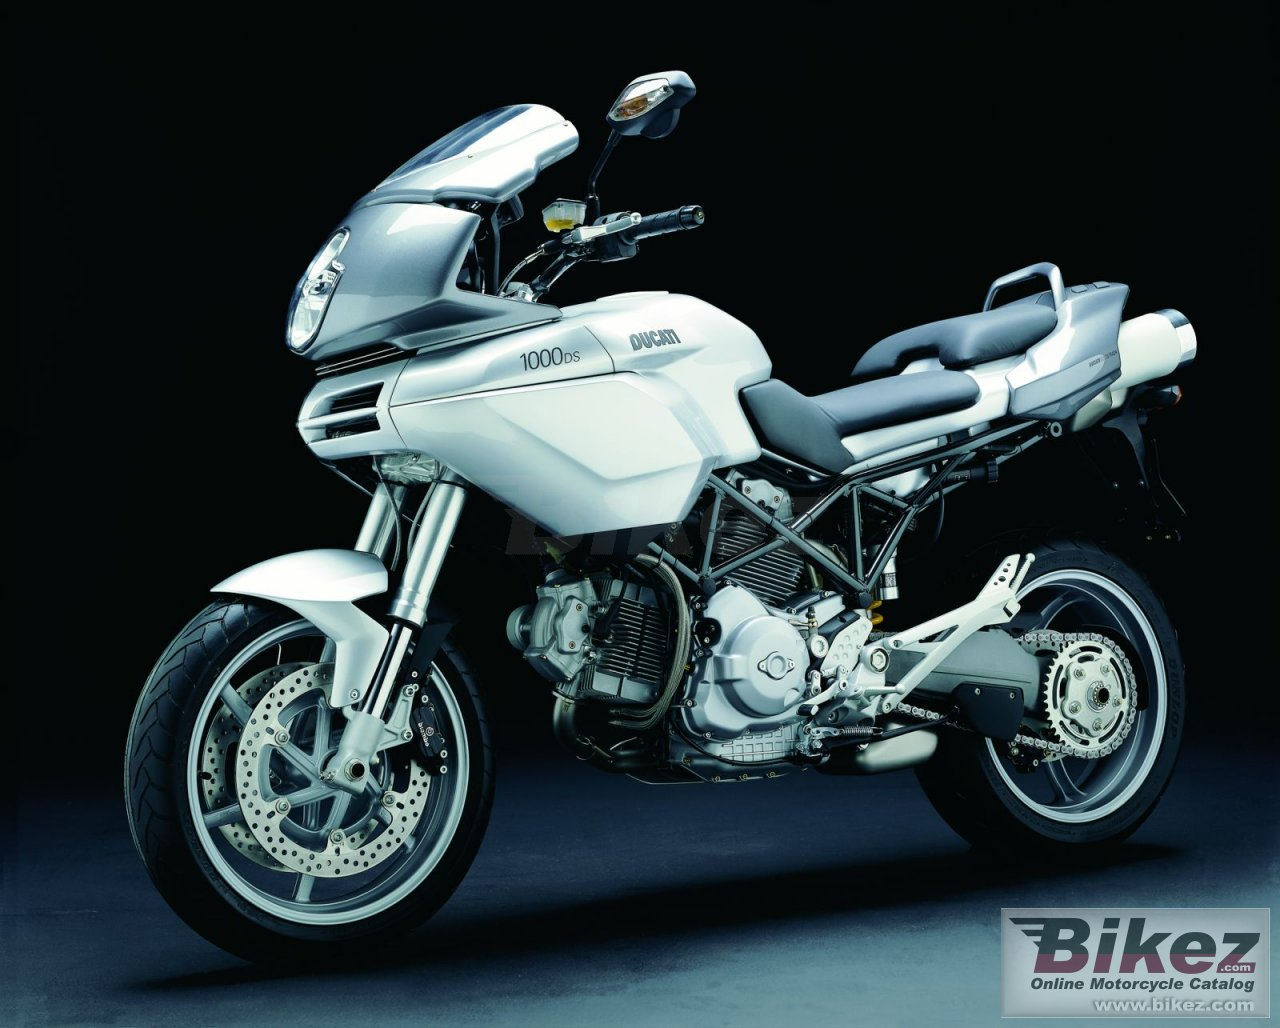 The respective copyright holder or manufacturer multistrada 1000 ds